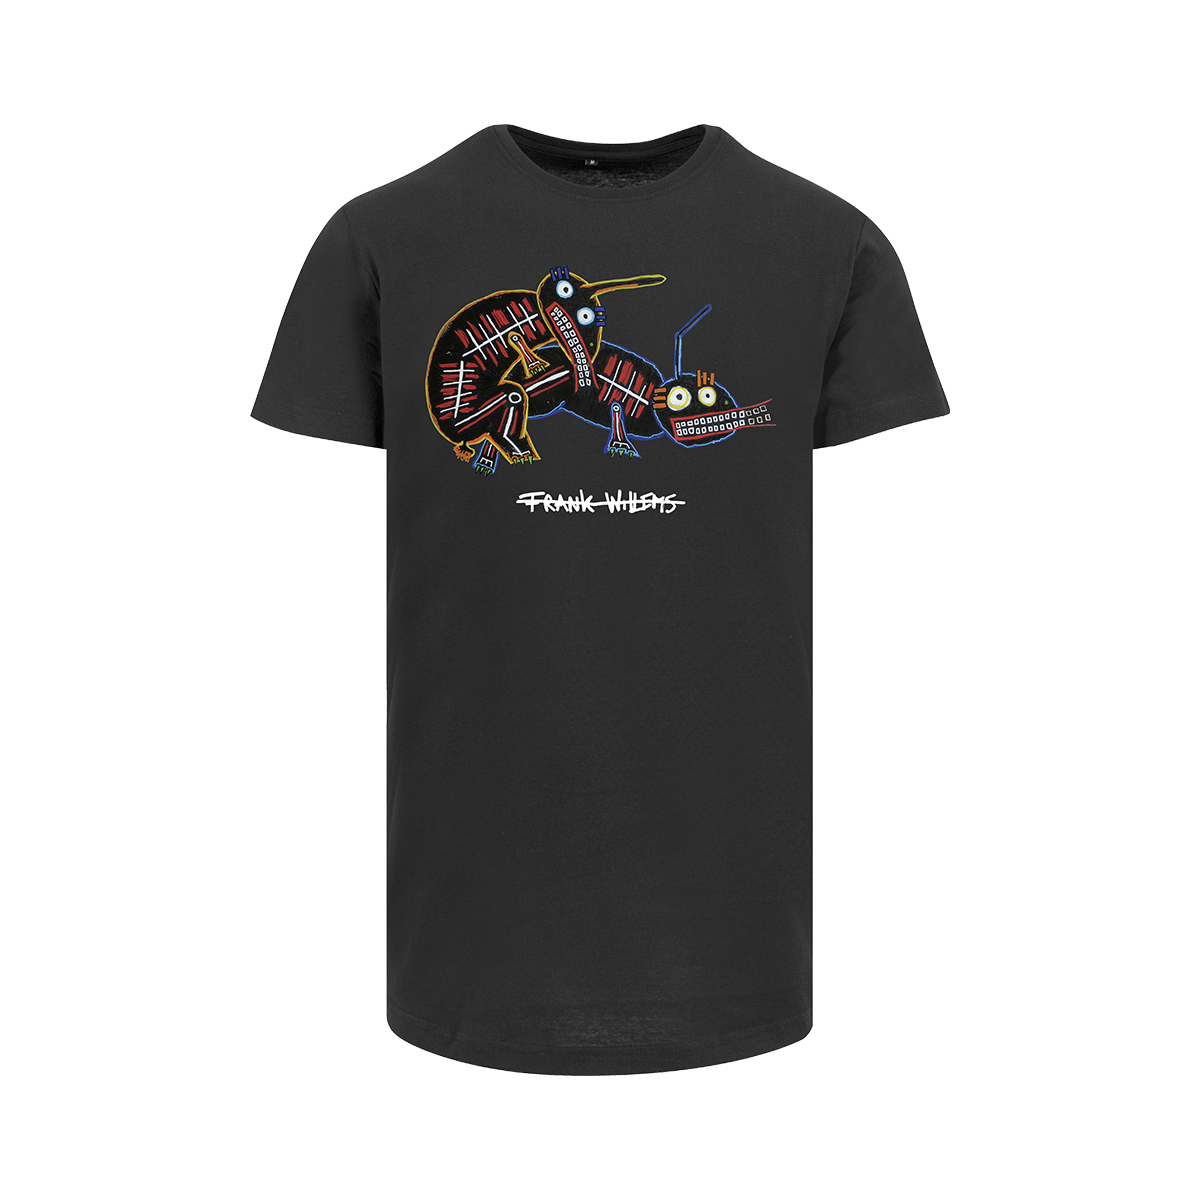 Frank Willems - Longfit T-shirt - NO STRINGS ATTACHED - BLK